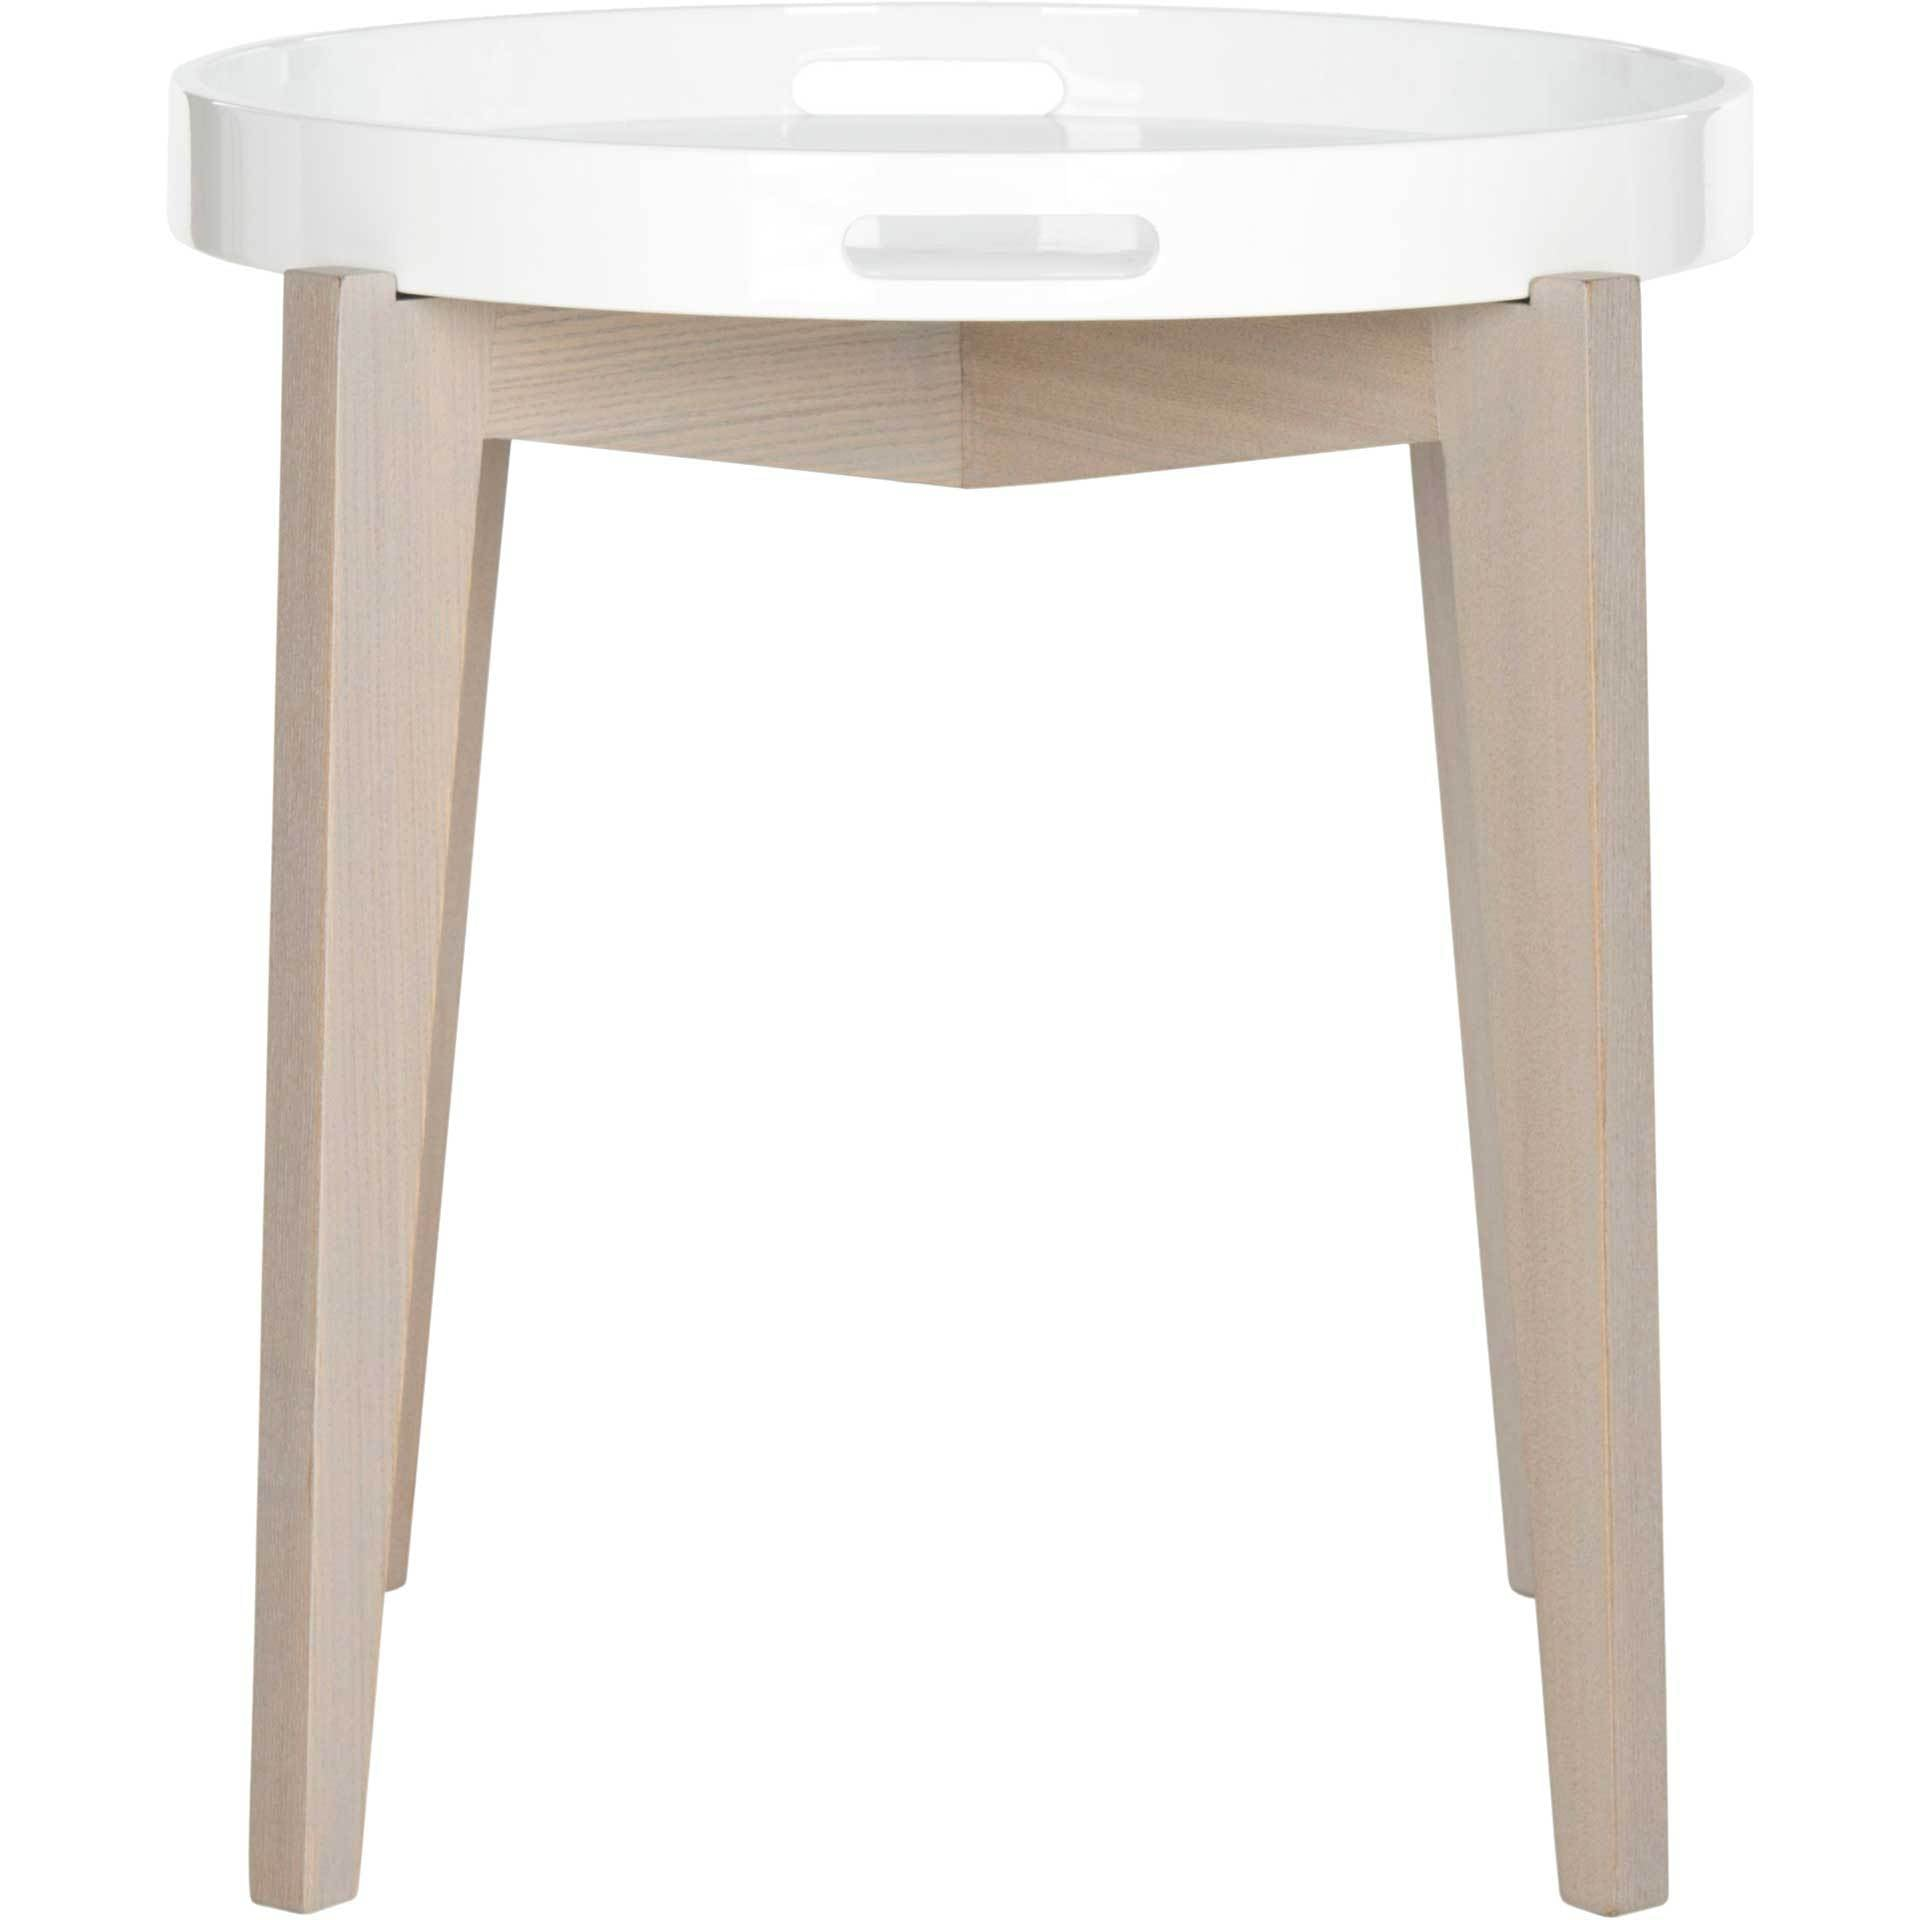 Beckett Lacquer Tray Top Side Table White/Beige